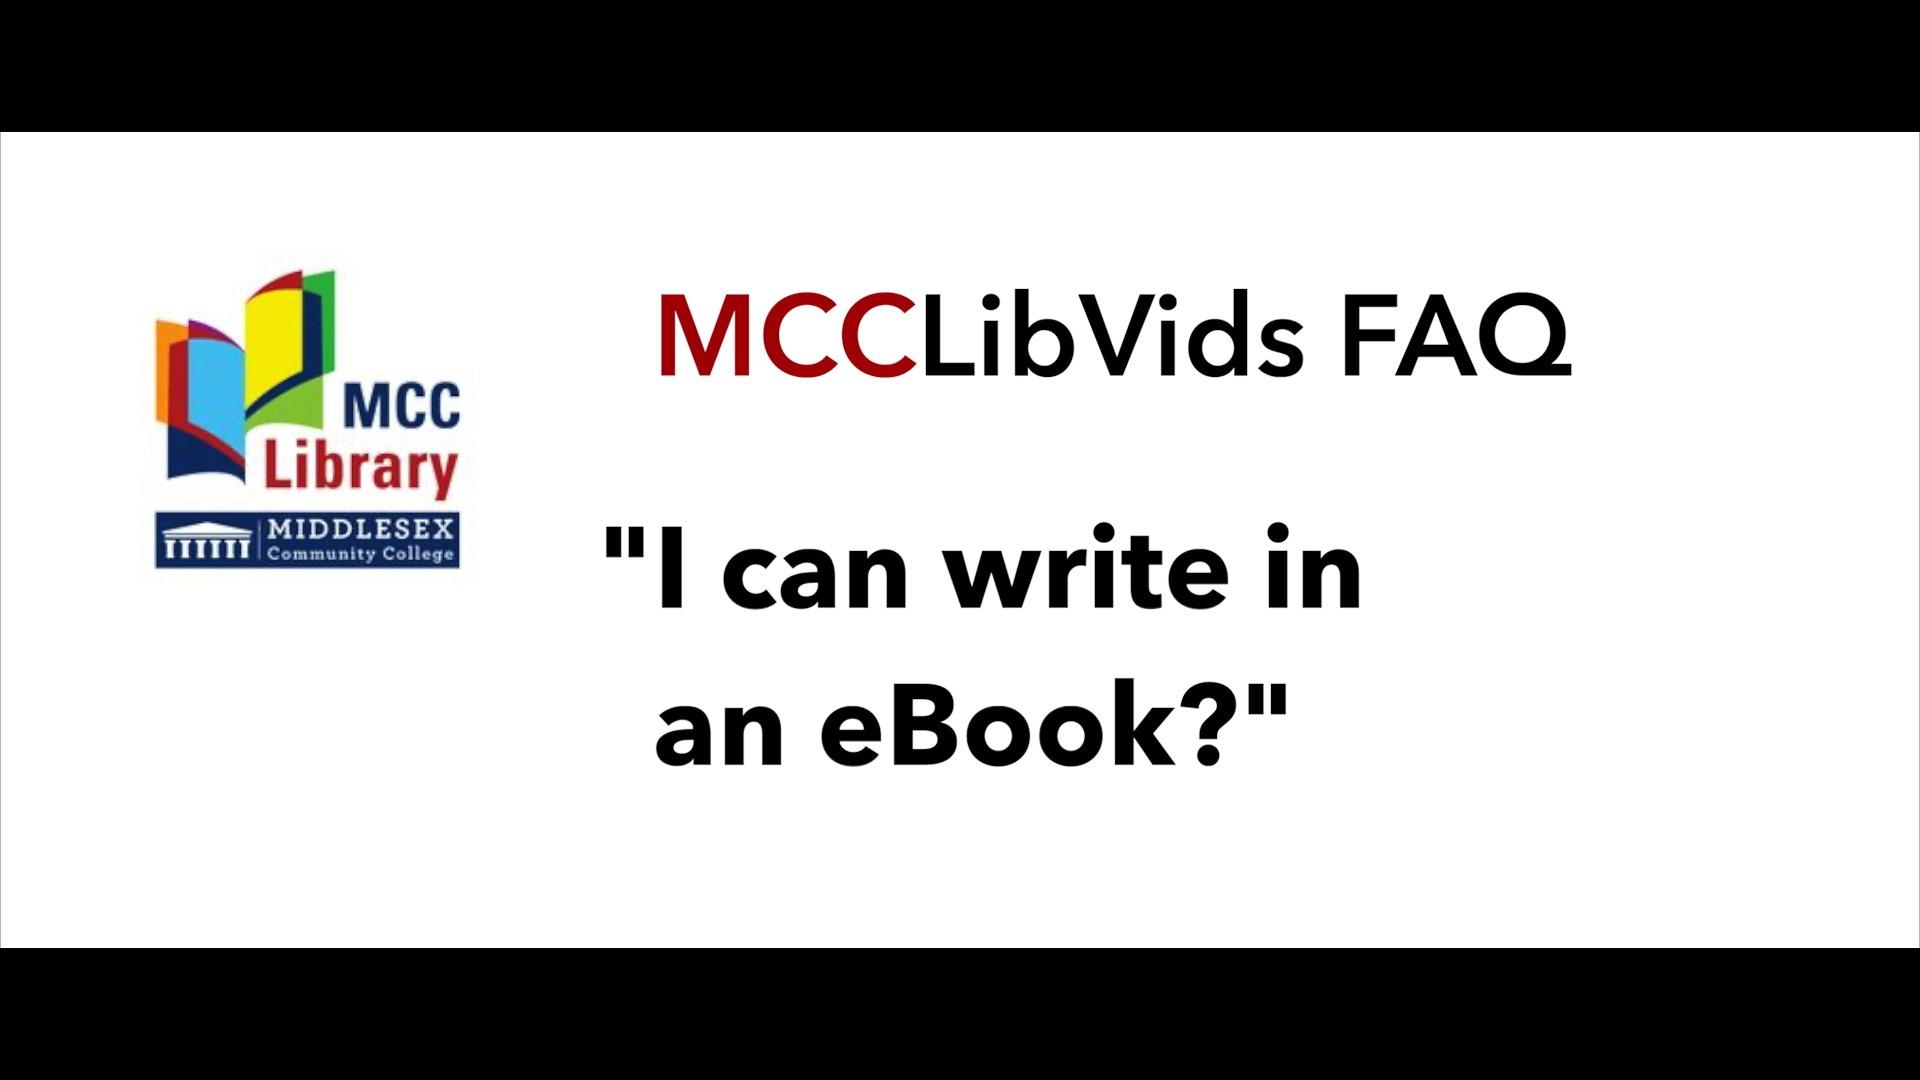 Button link to video: I can write in an eBook? MCCLibVids FAQ